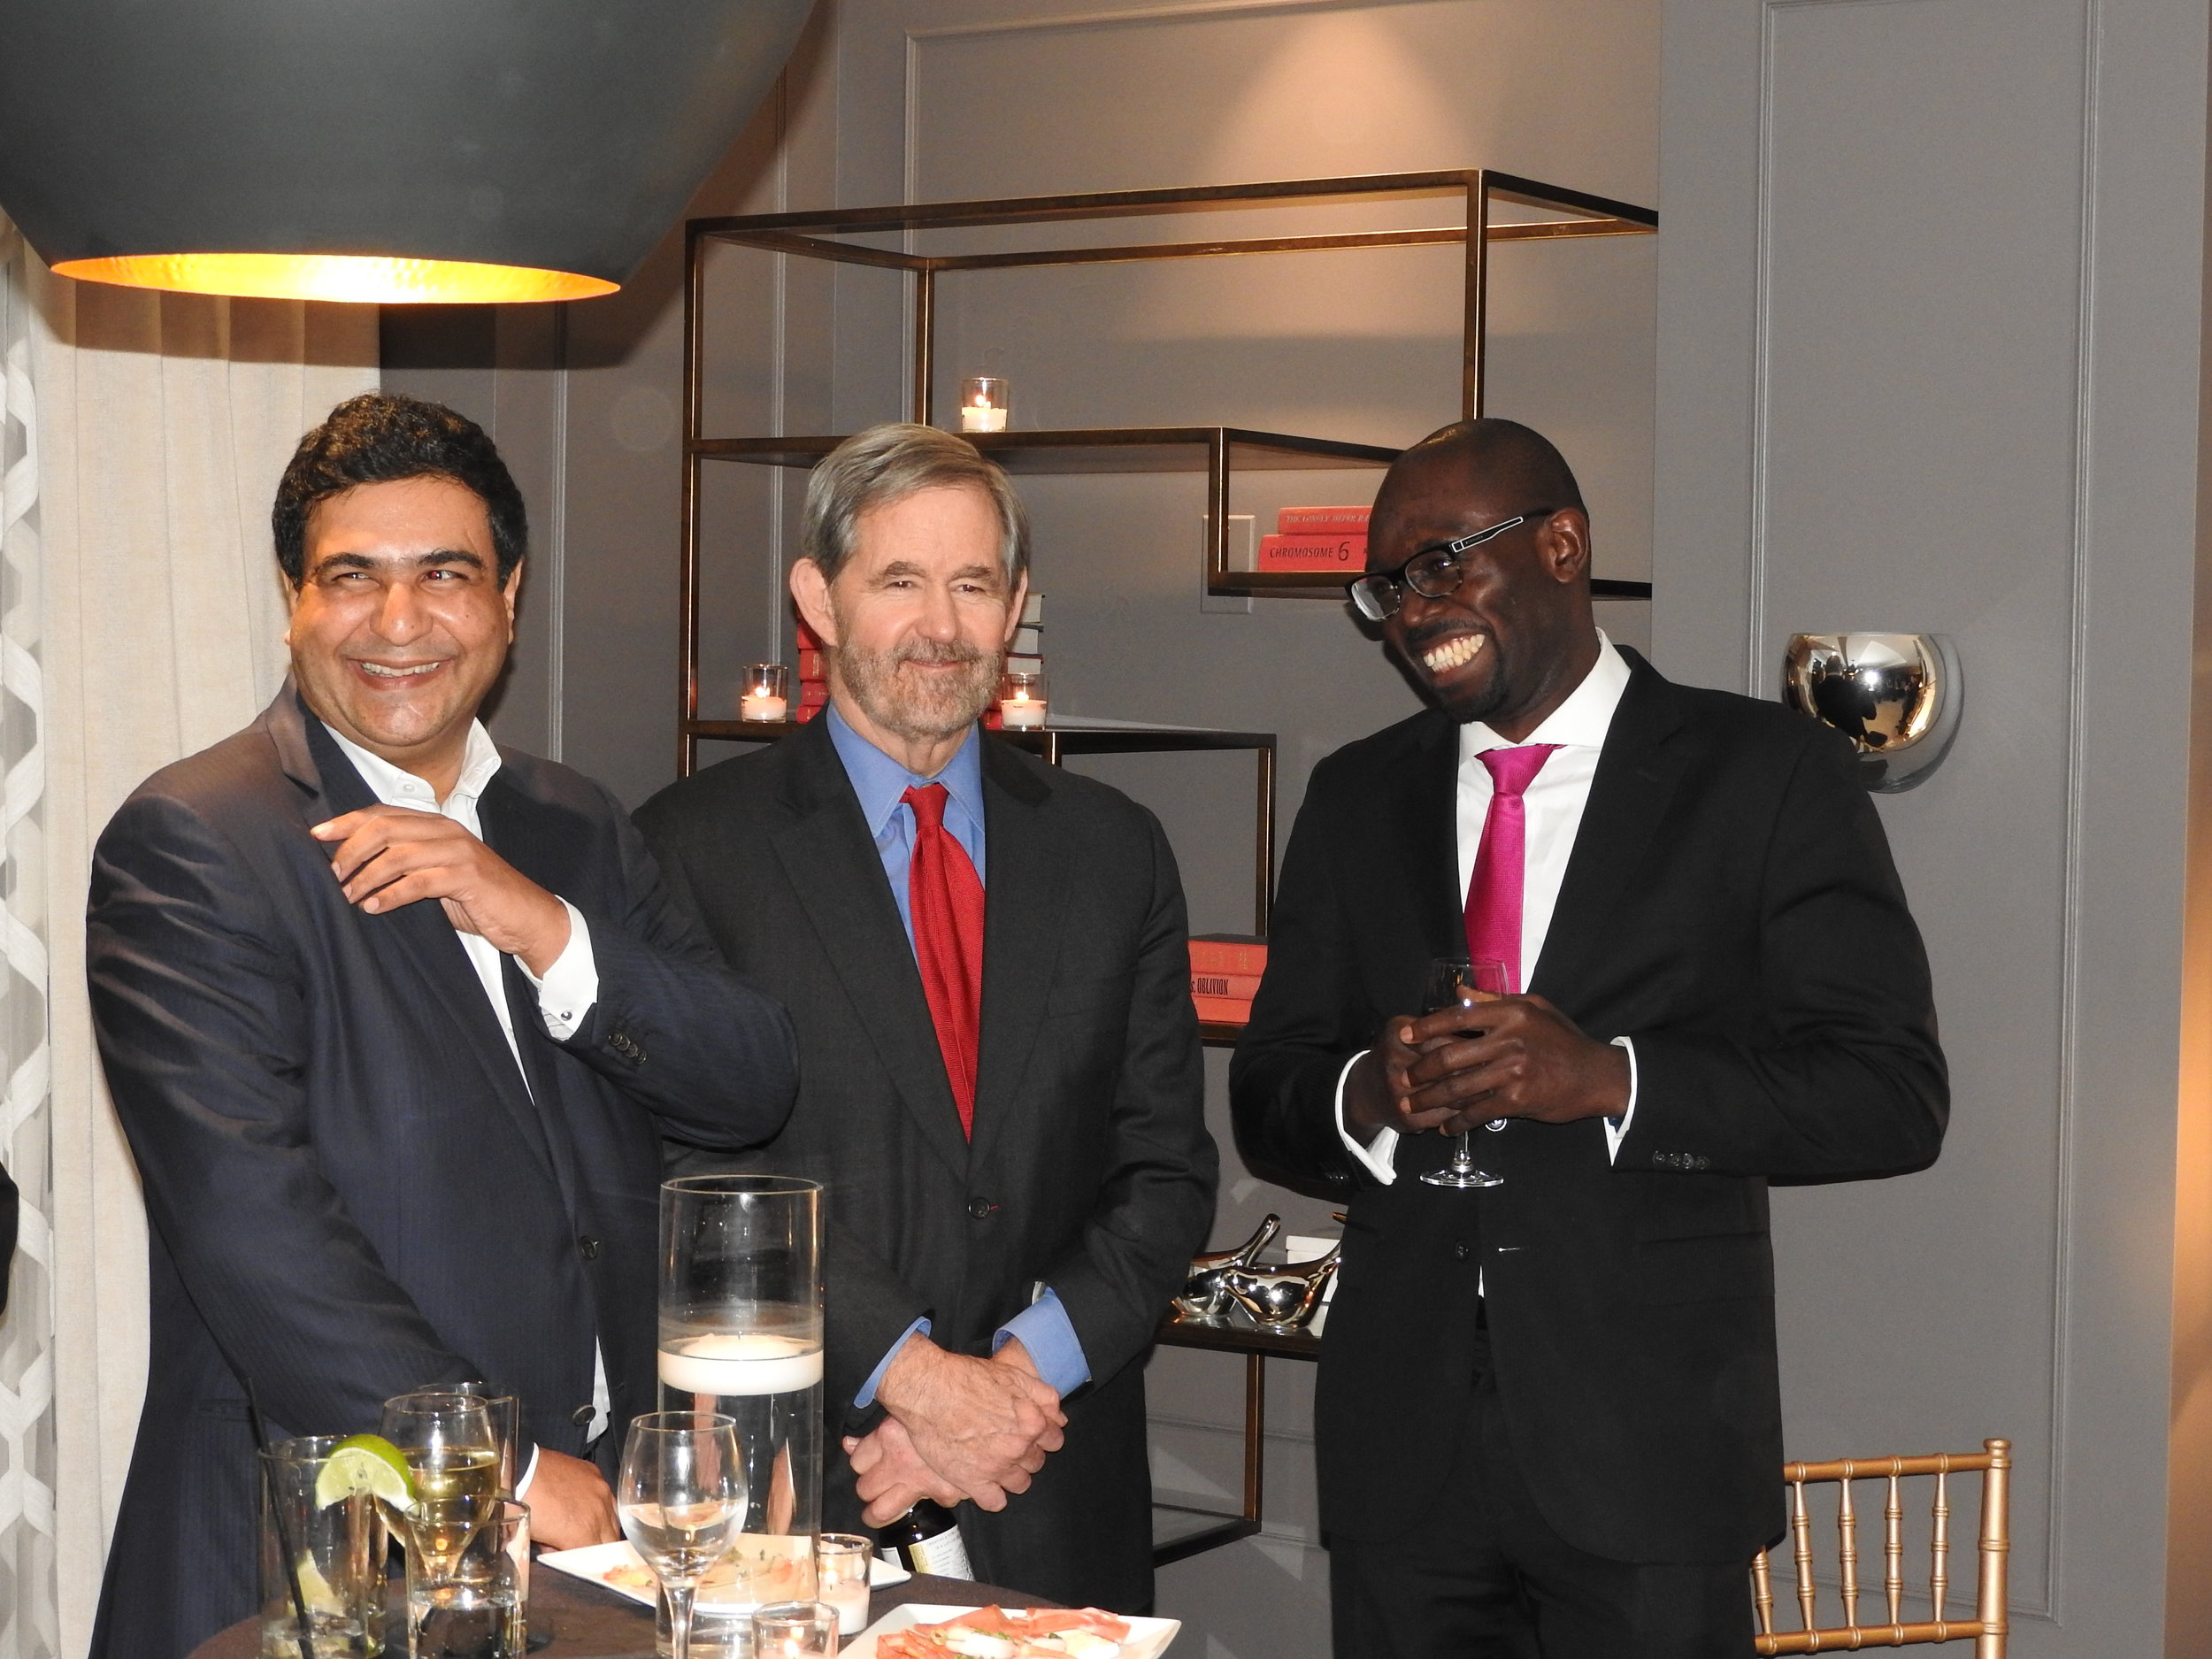 Zouzar Bouka (Board member), Scott Greathead (Board member), Patrick Omeke (Symbion Power)